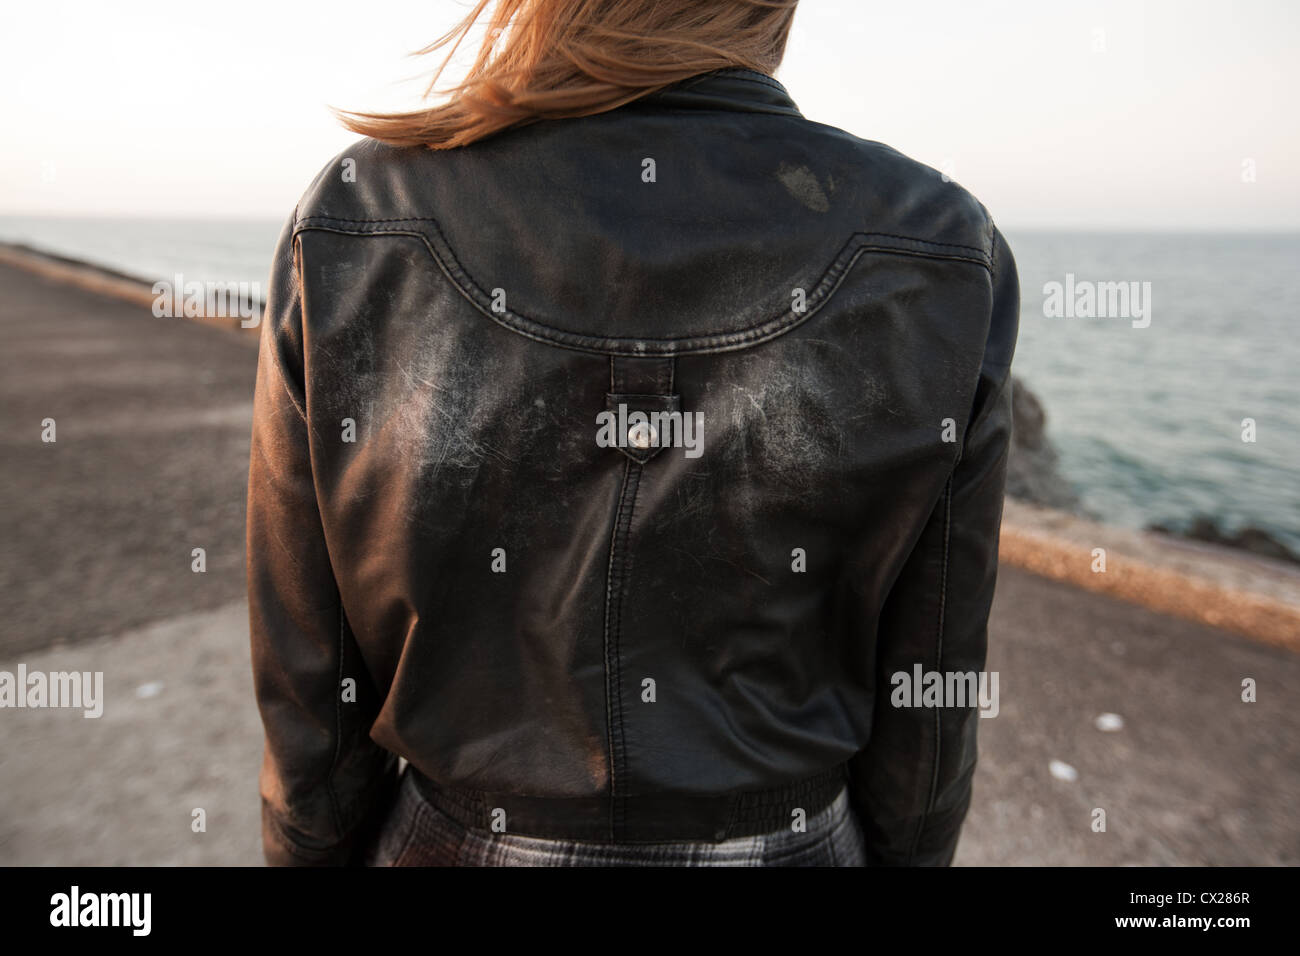 3ace0dc3928 Girl on pier with old worn leather jacket Stock Photo  50452159 - Alamy